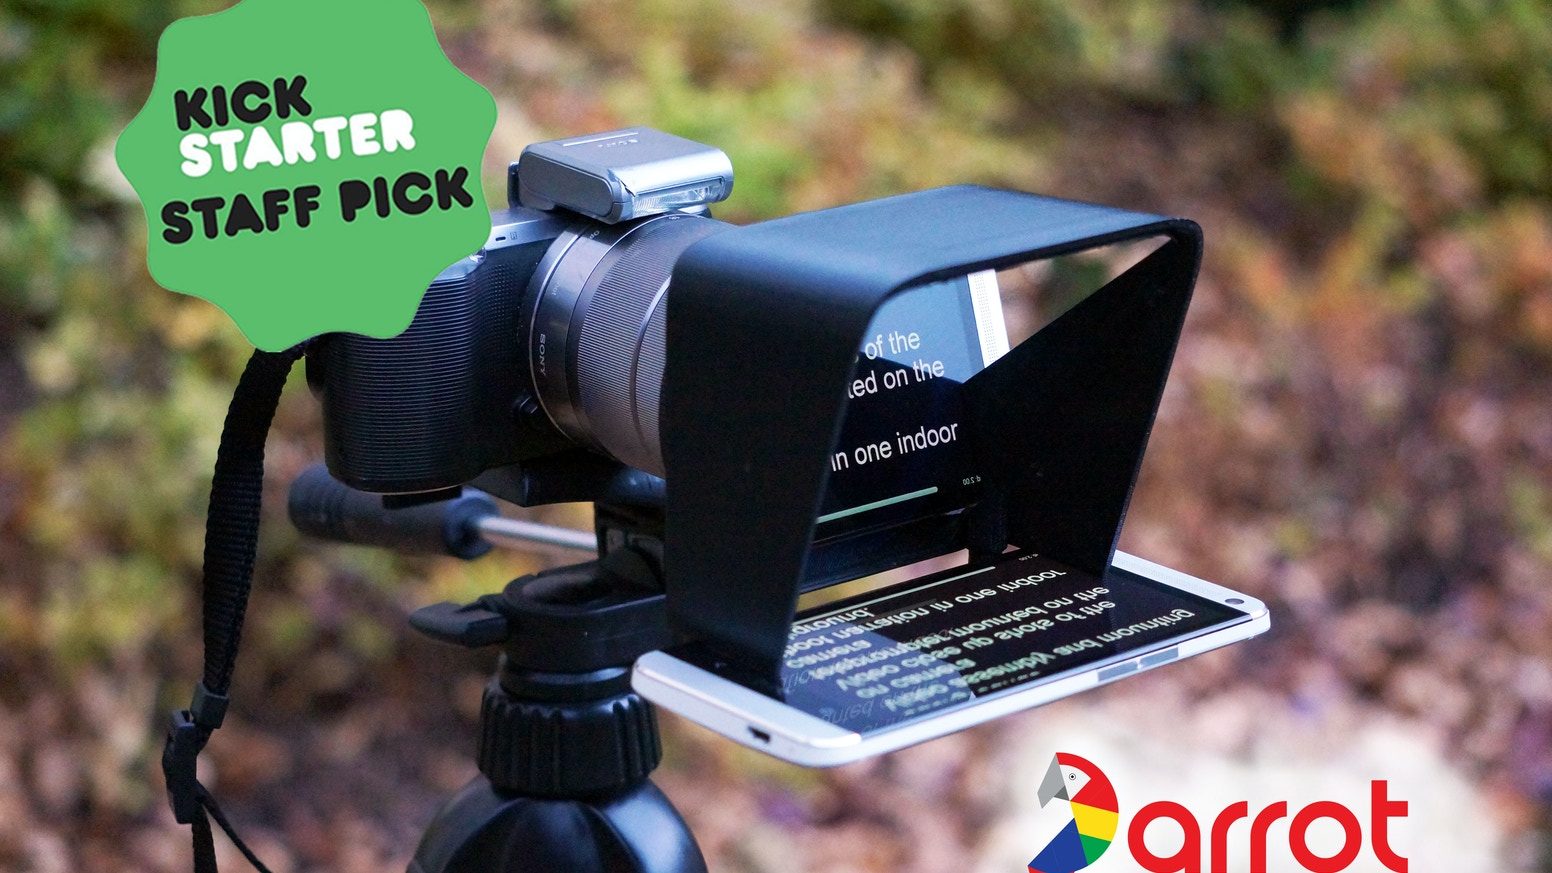 Finally, a compact and affordable teleprompter for camcorders, and DSLR cameras. Perfect for video professionals, bloggers, Indy films, and more.